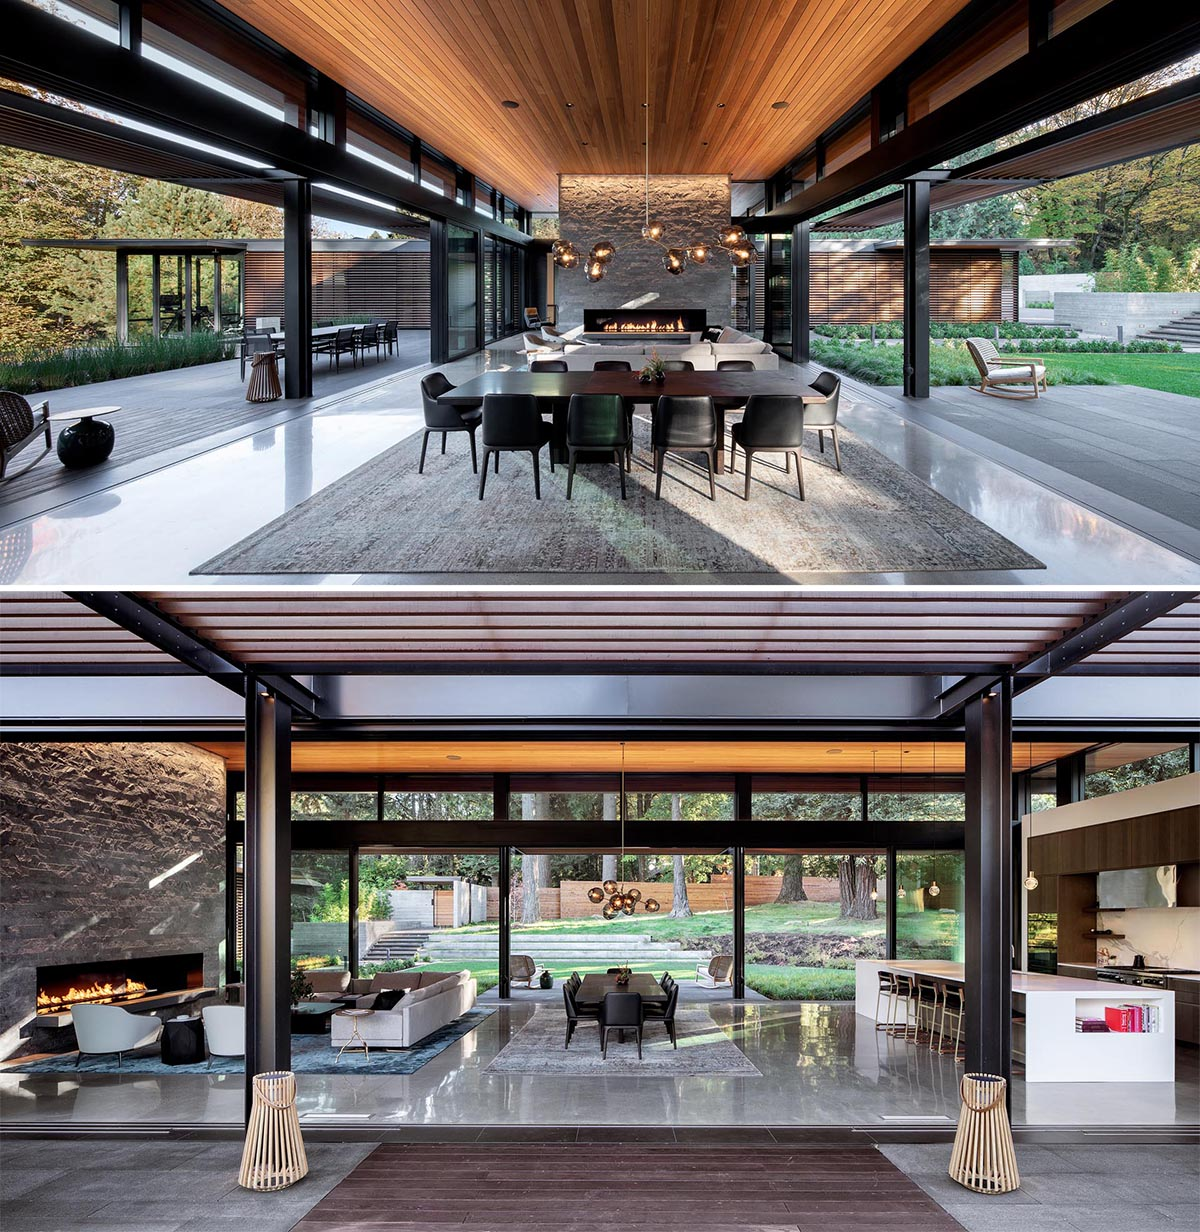 The main social areas of this modern home are gathered together in single open plan room with retractable glass doors and large glass walls on either side that open to expansive outdoor spaces.